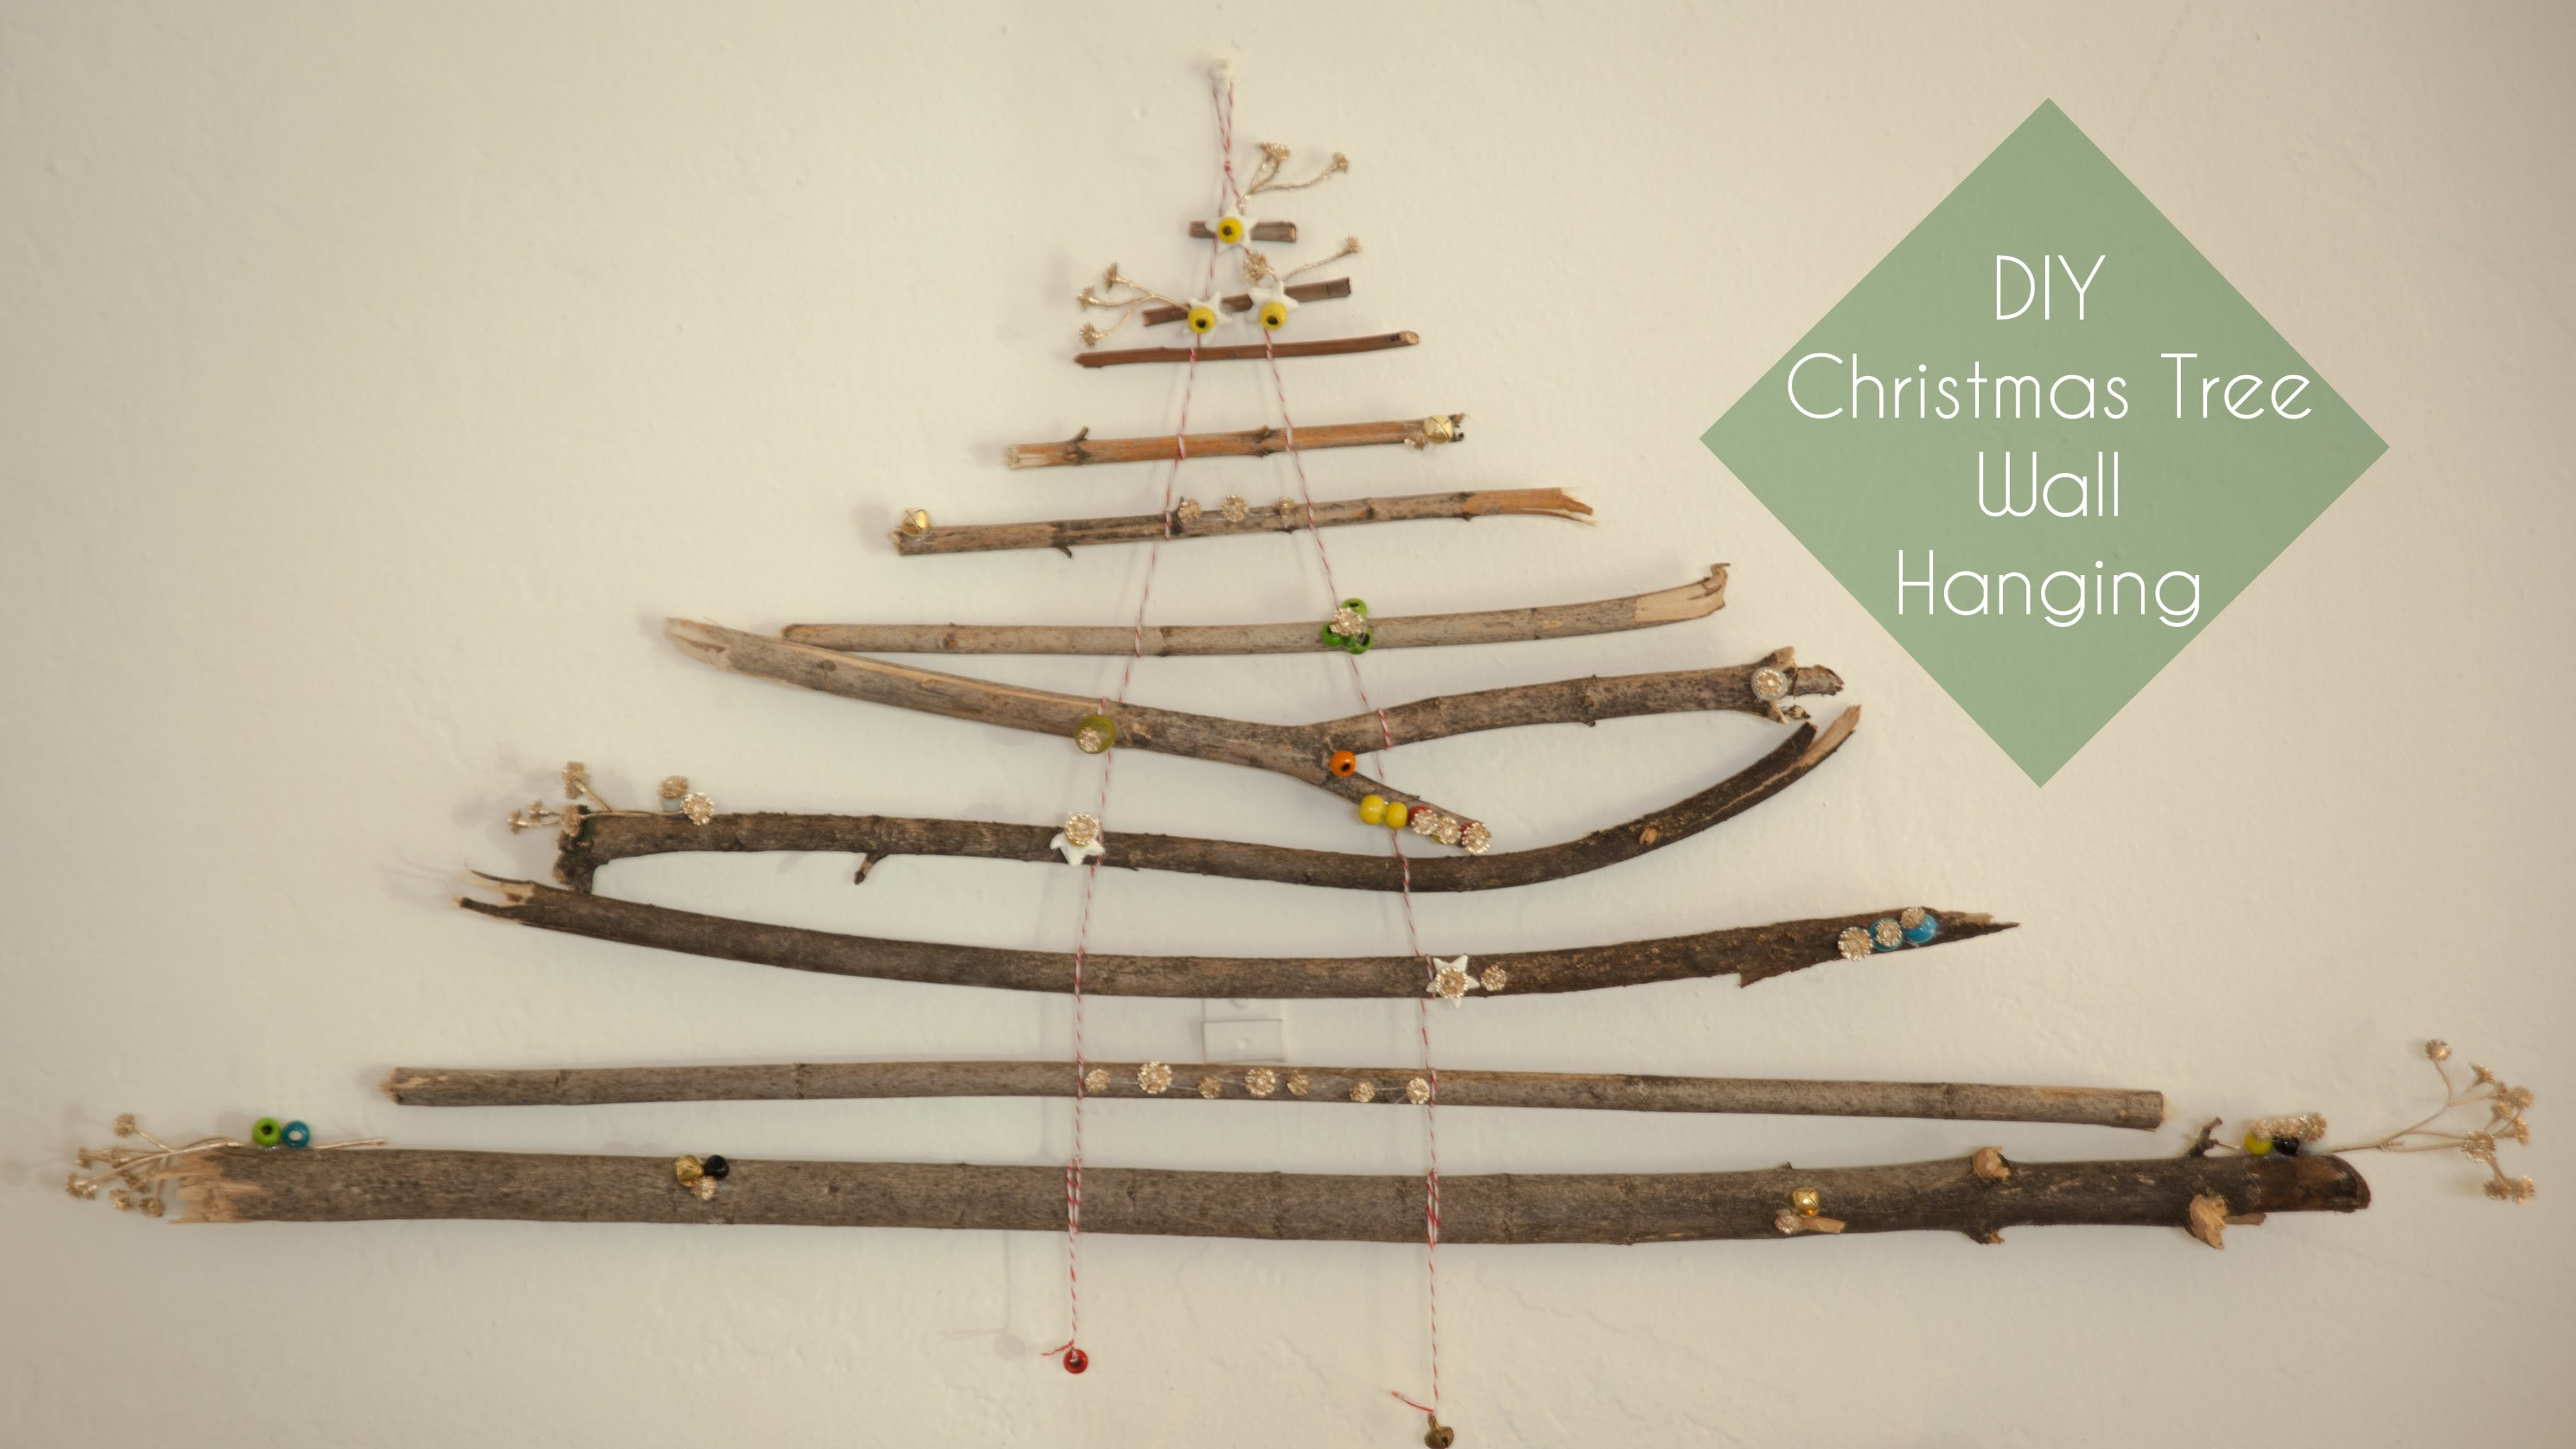 DIY Christmas Tree Wall Hanging